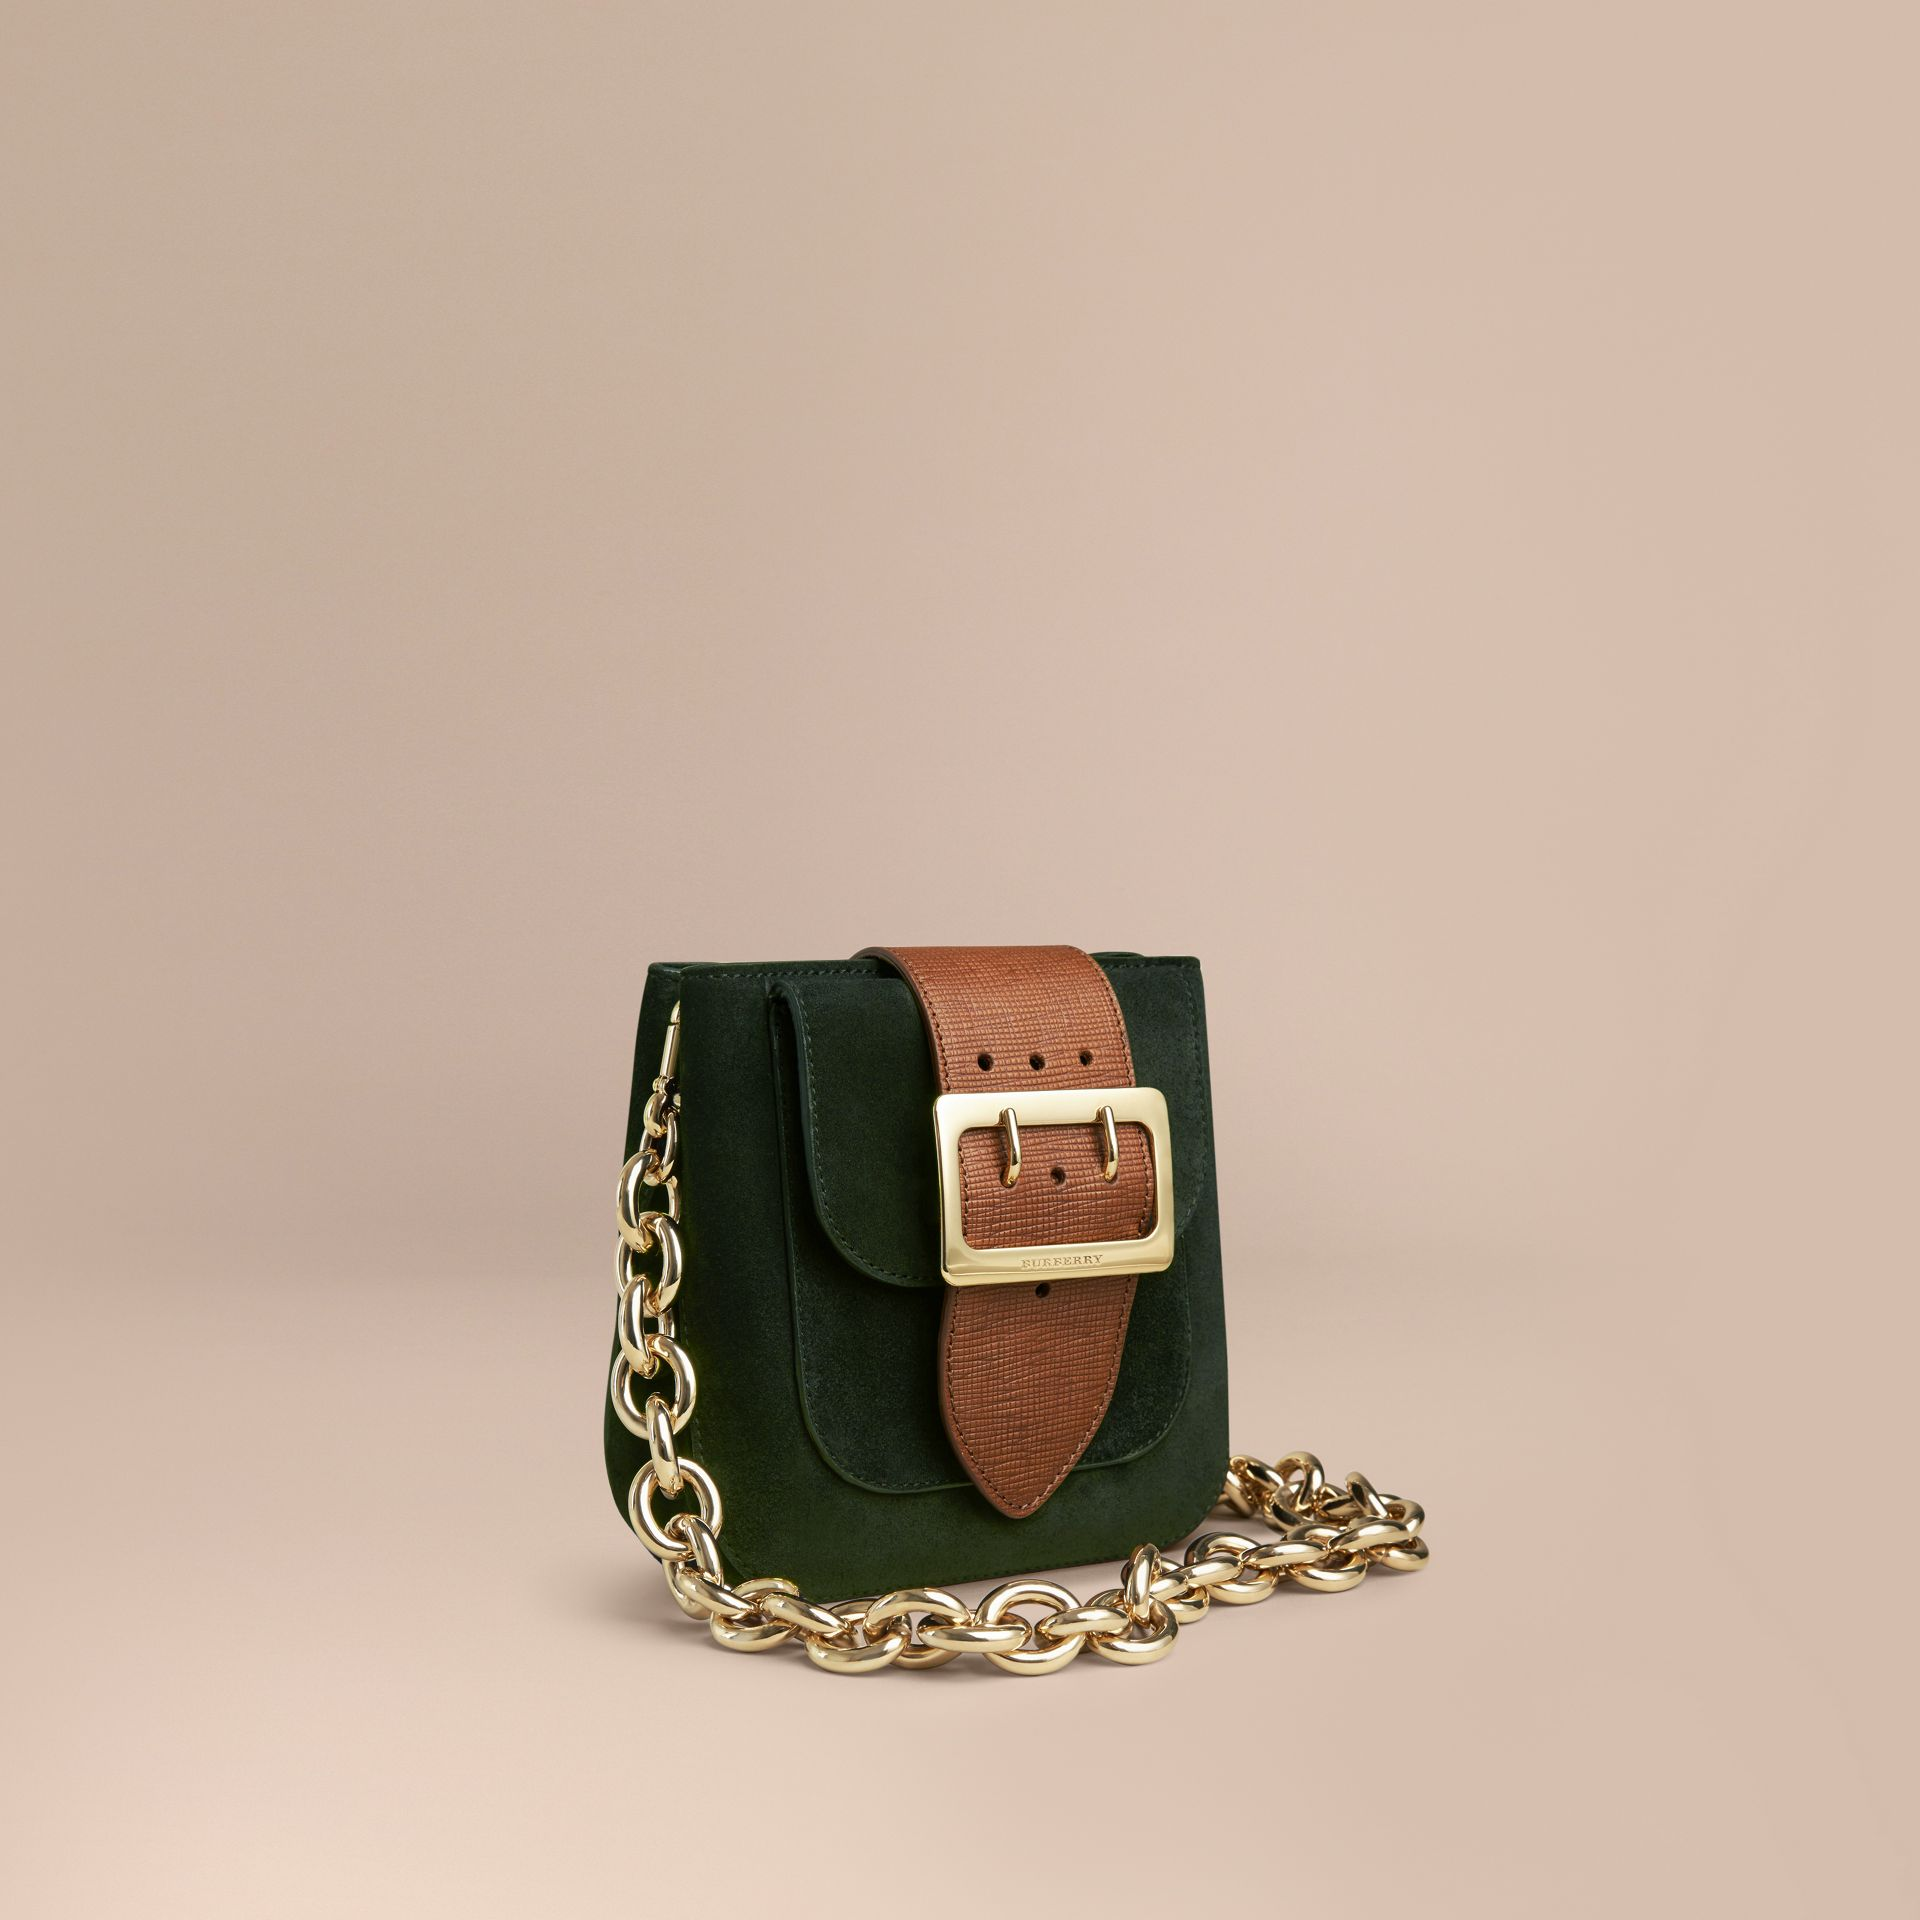 Dark forest green The Small Square Buckle Bag in Suede and Leather Dark Forest Green - gallery image 1